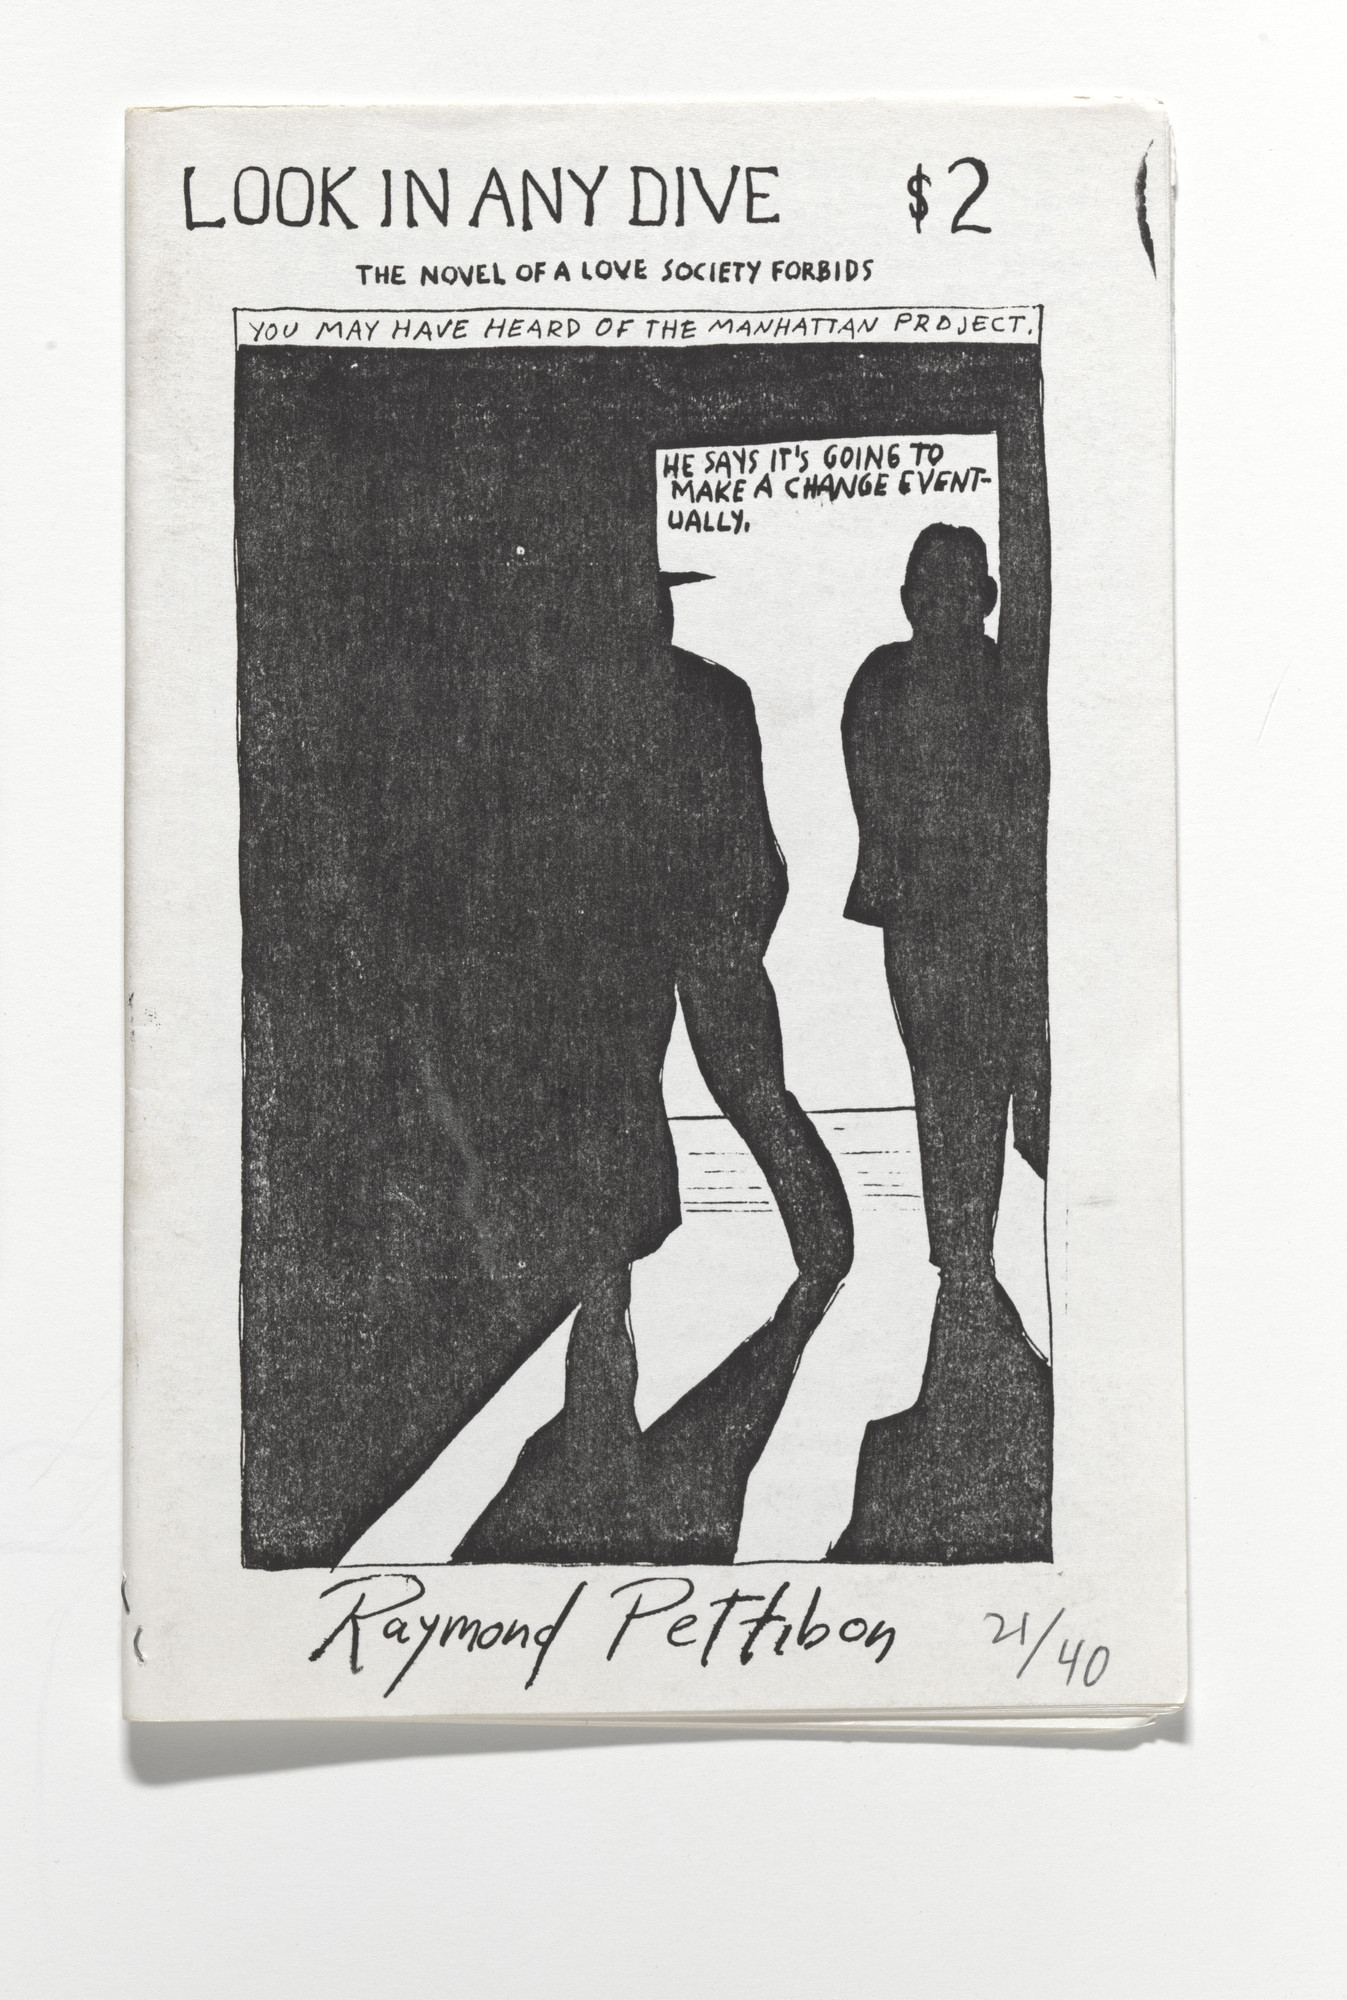 Raymond Pettibon. Look in Any Dive. The Novel of a Love Society Forbids. 1990